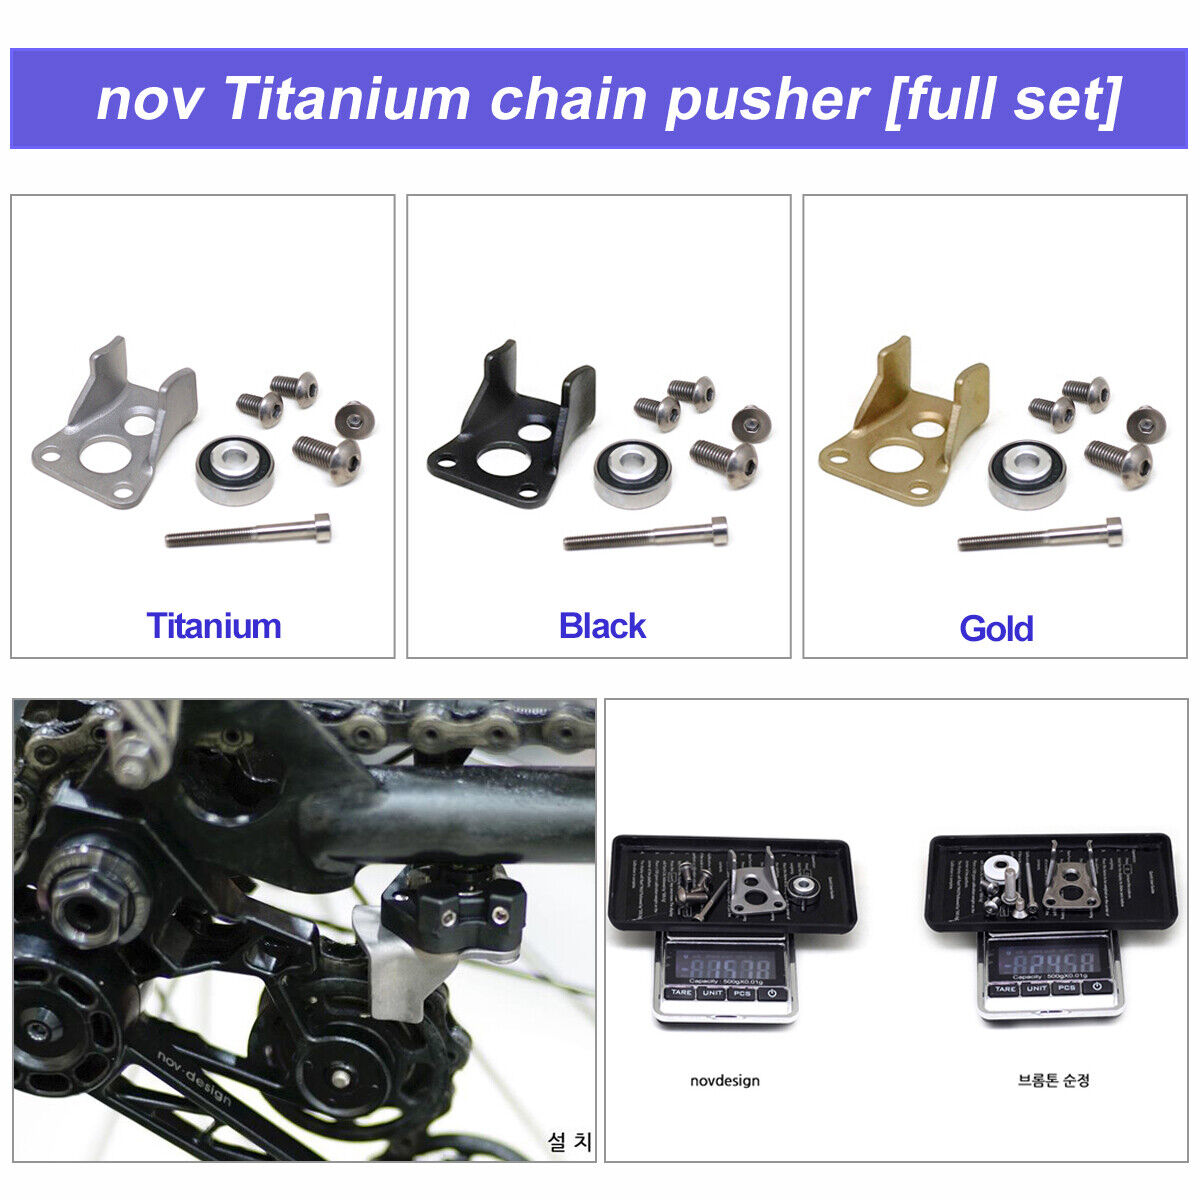 Nov Titanium chain pusher full set   light weight for brompton  (for 2, 6 speed)